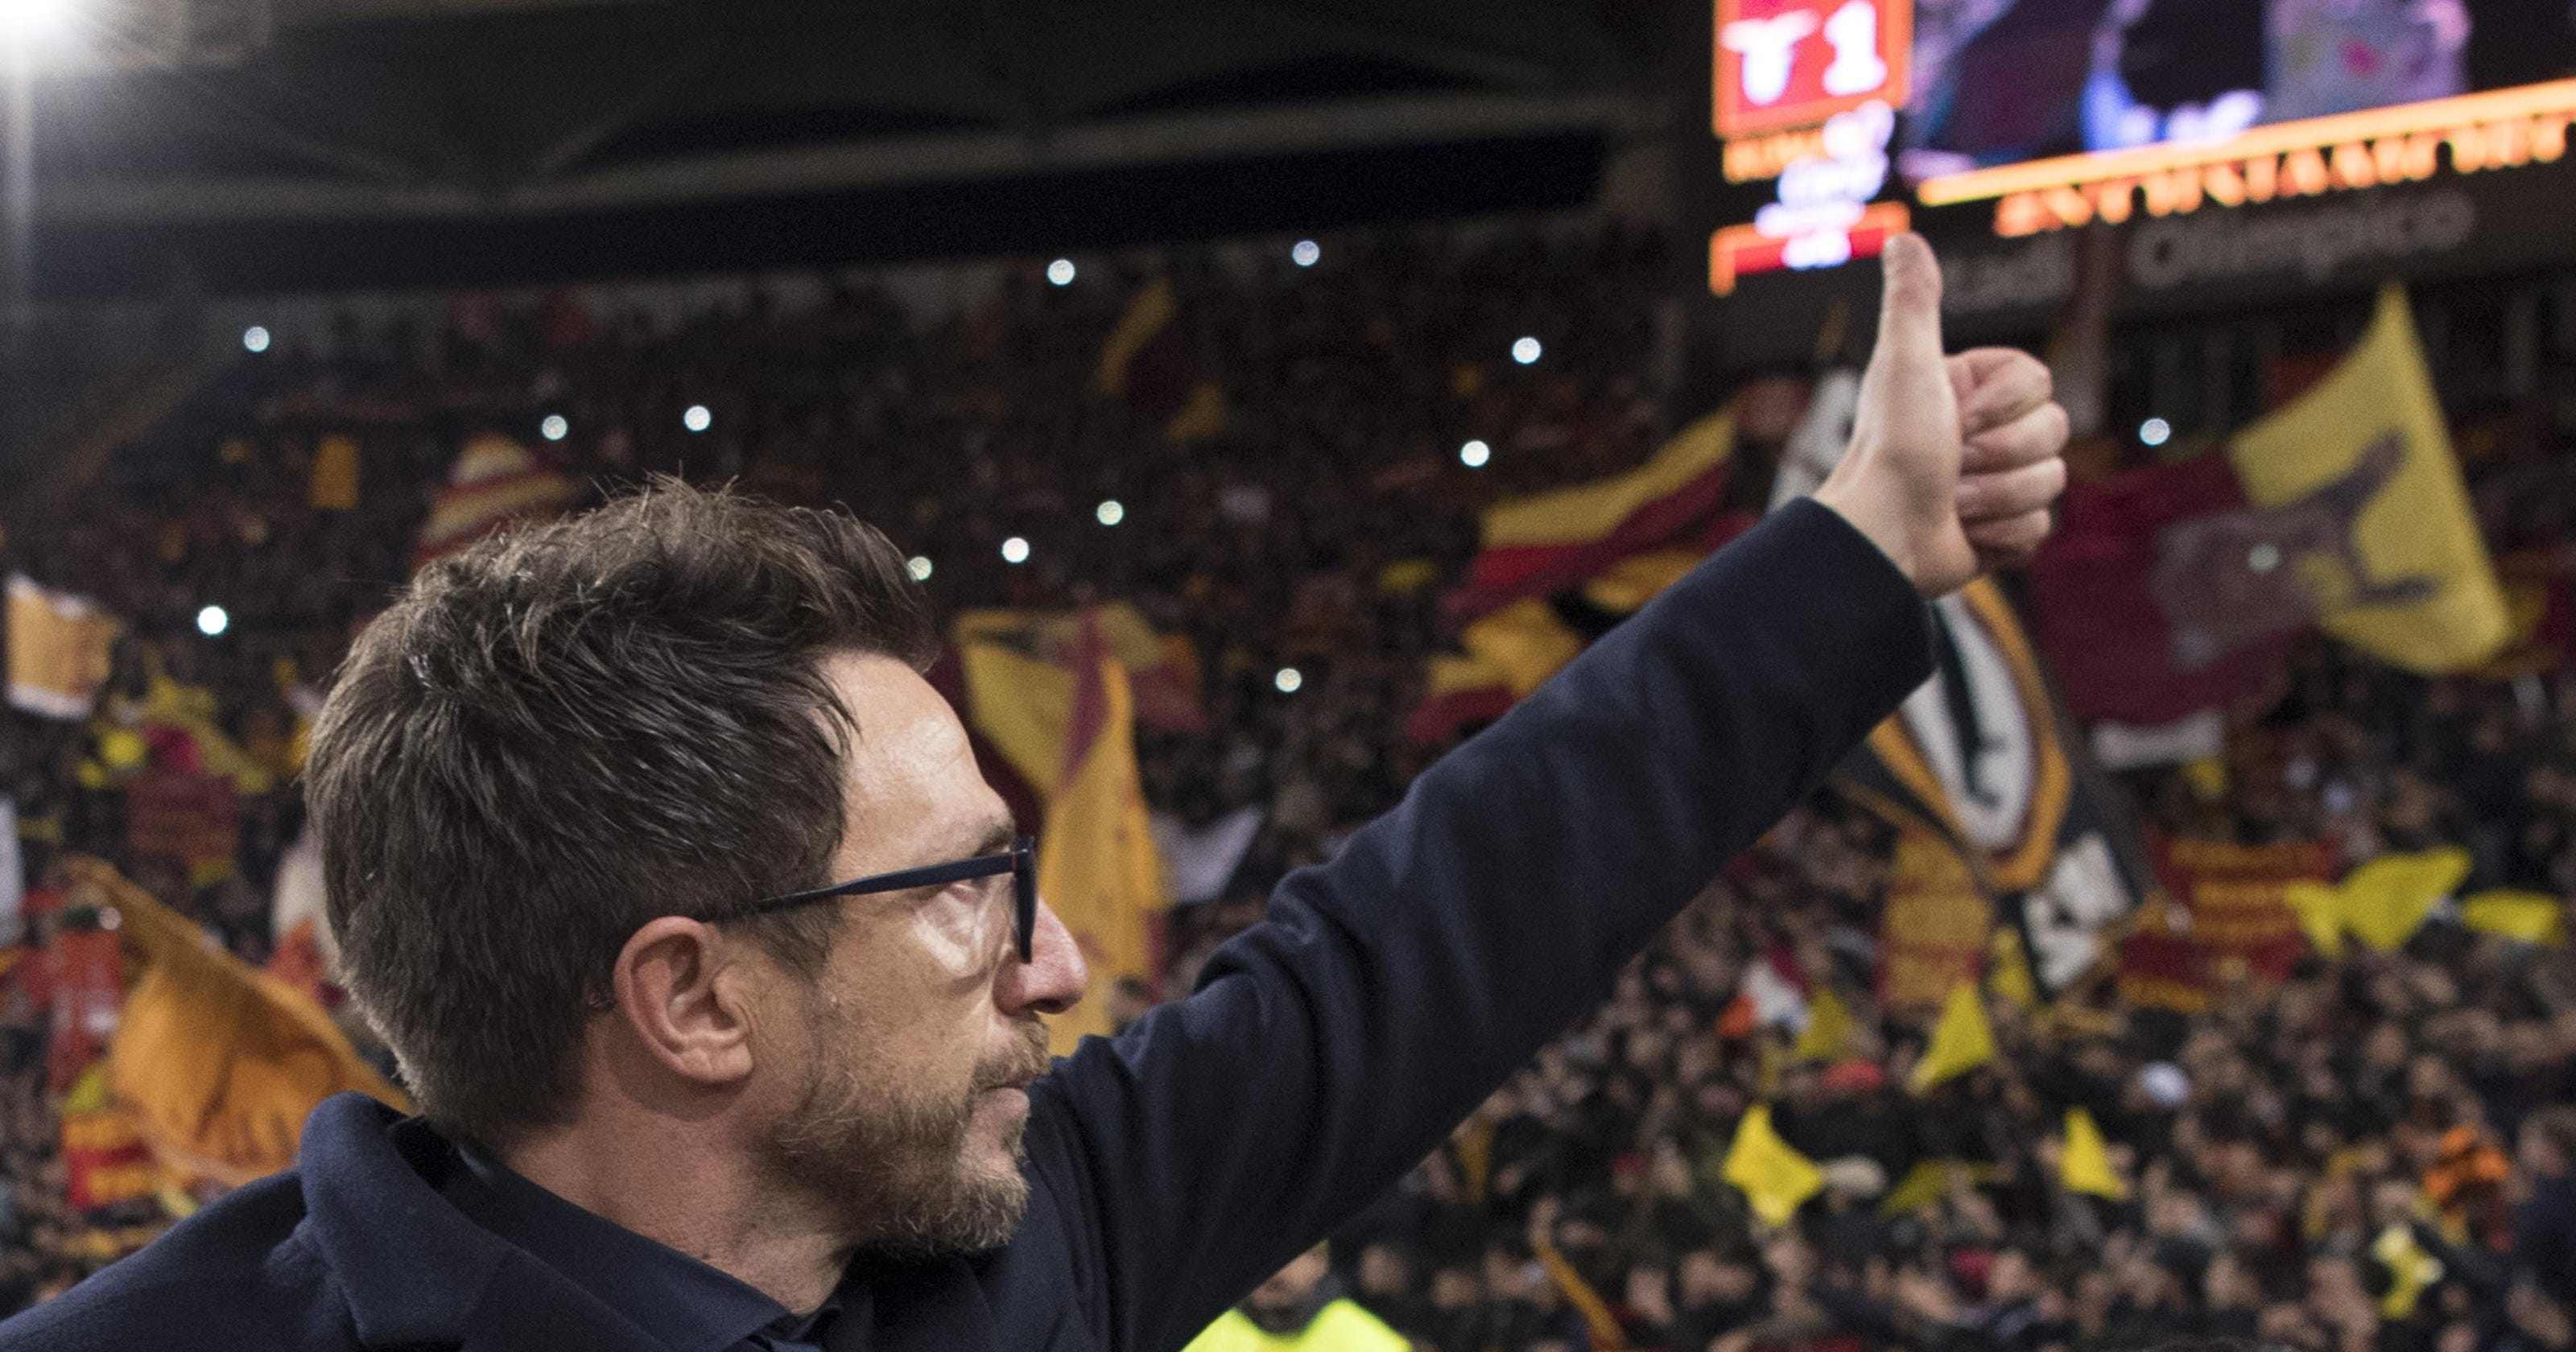 562025018  We are the city   Roma beats Lazio 2-1 in heated derby